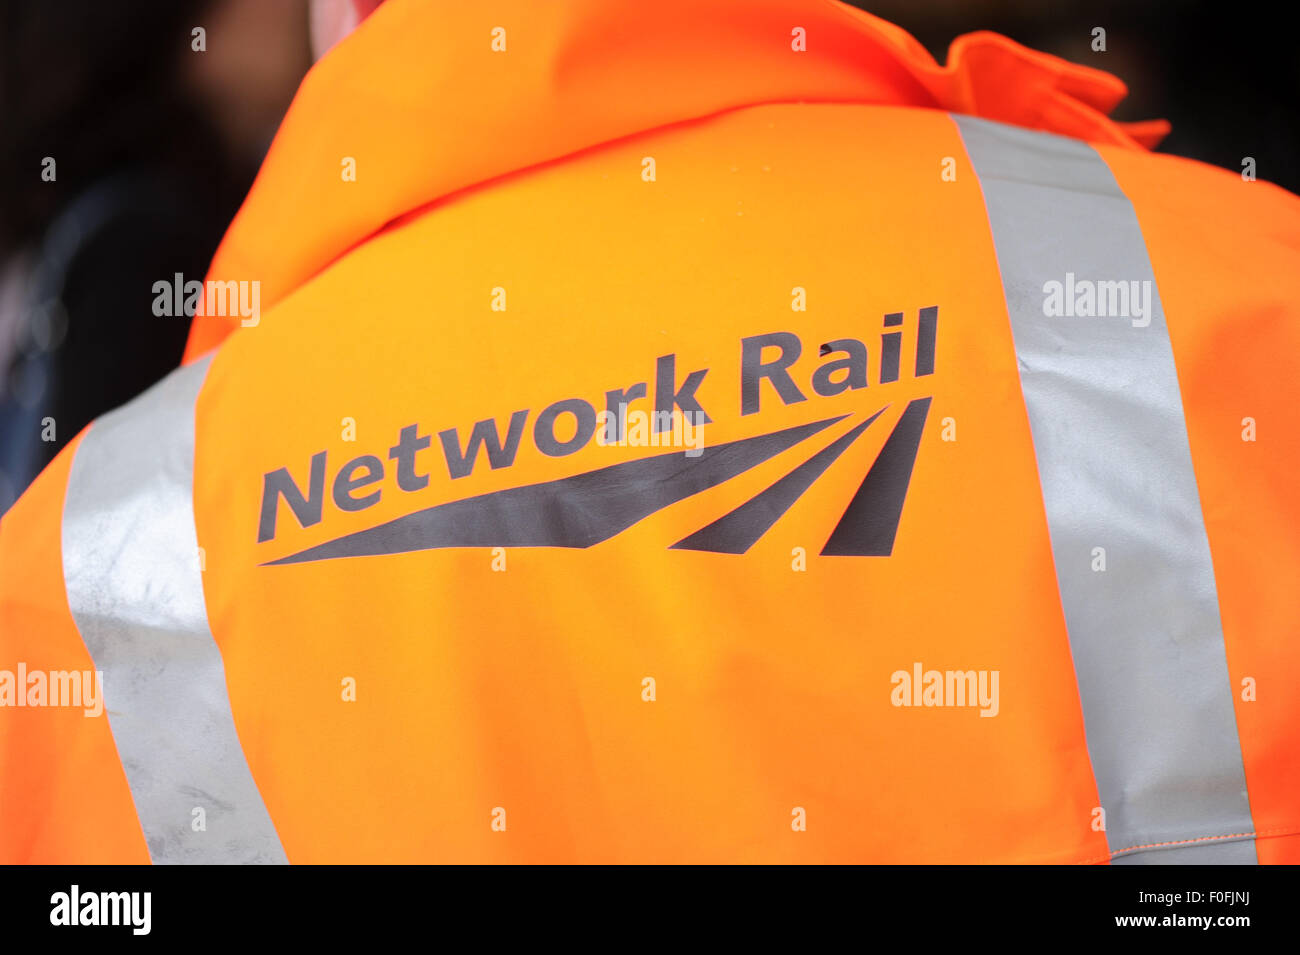 A Network Rail employee at a train station. - Stock Image